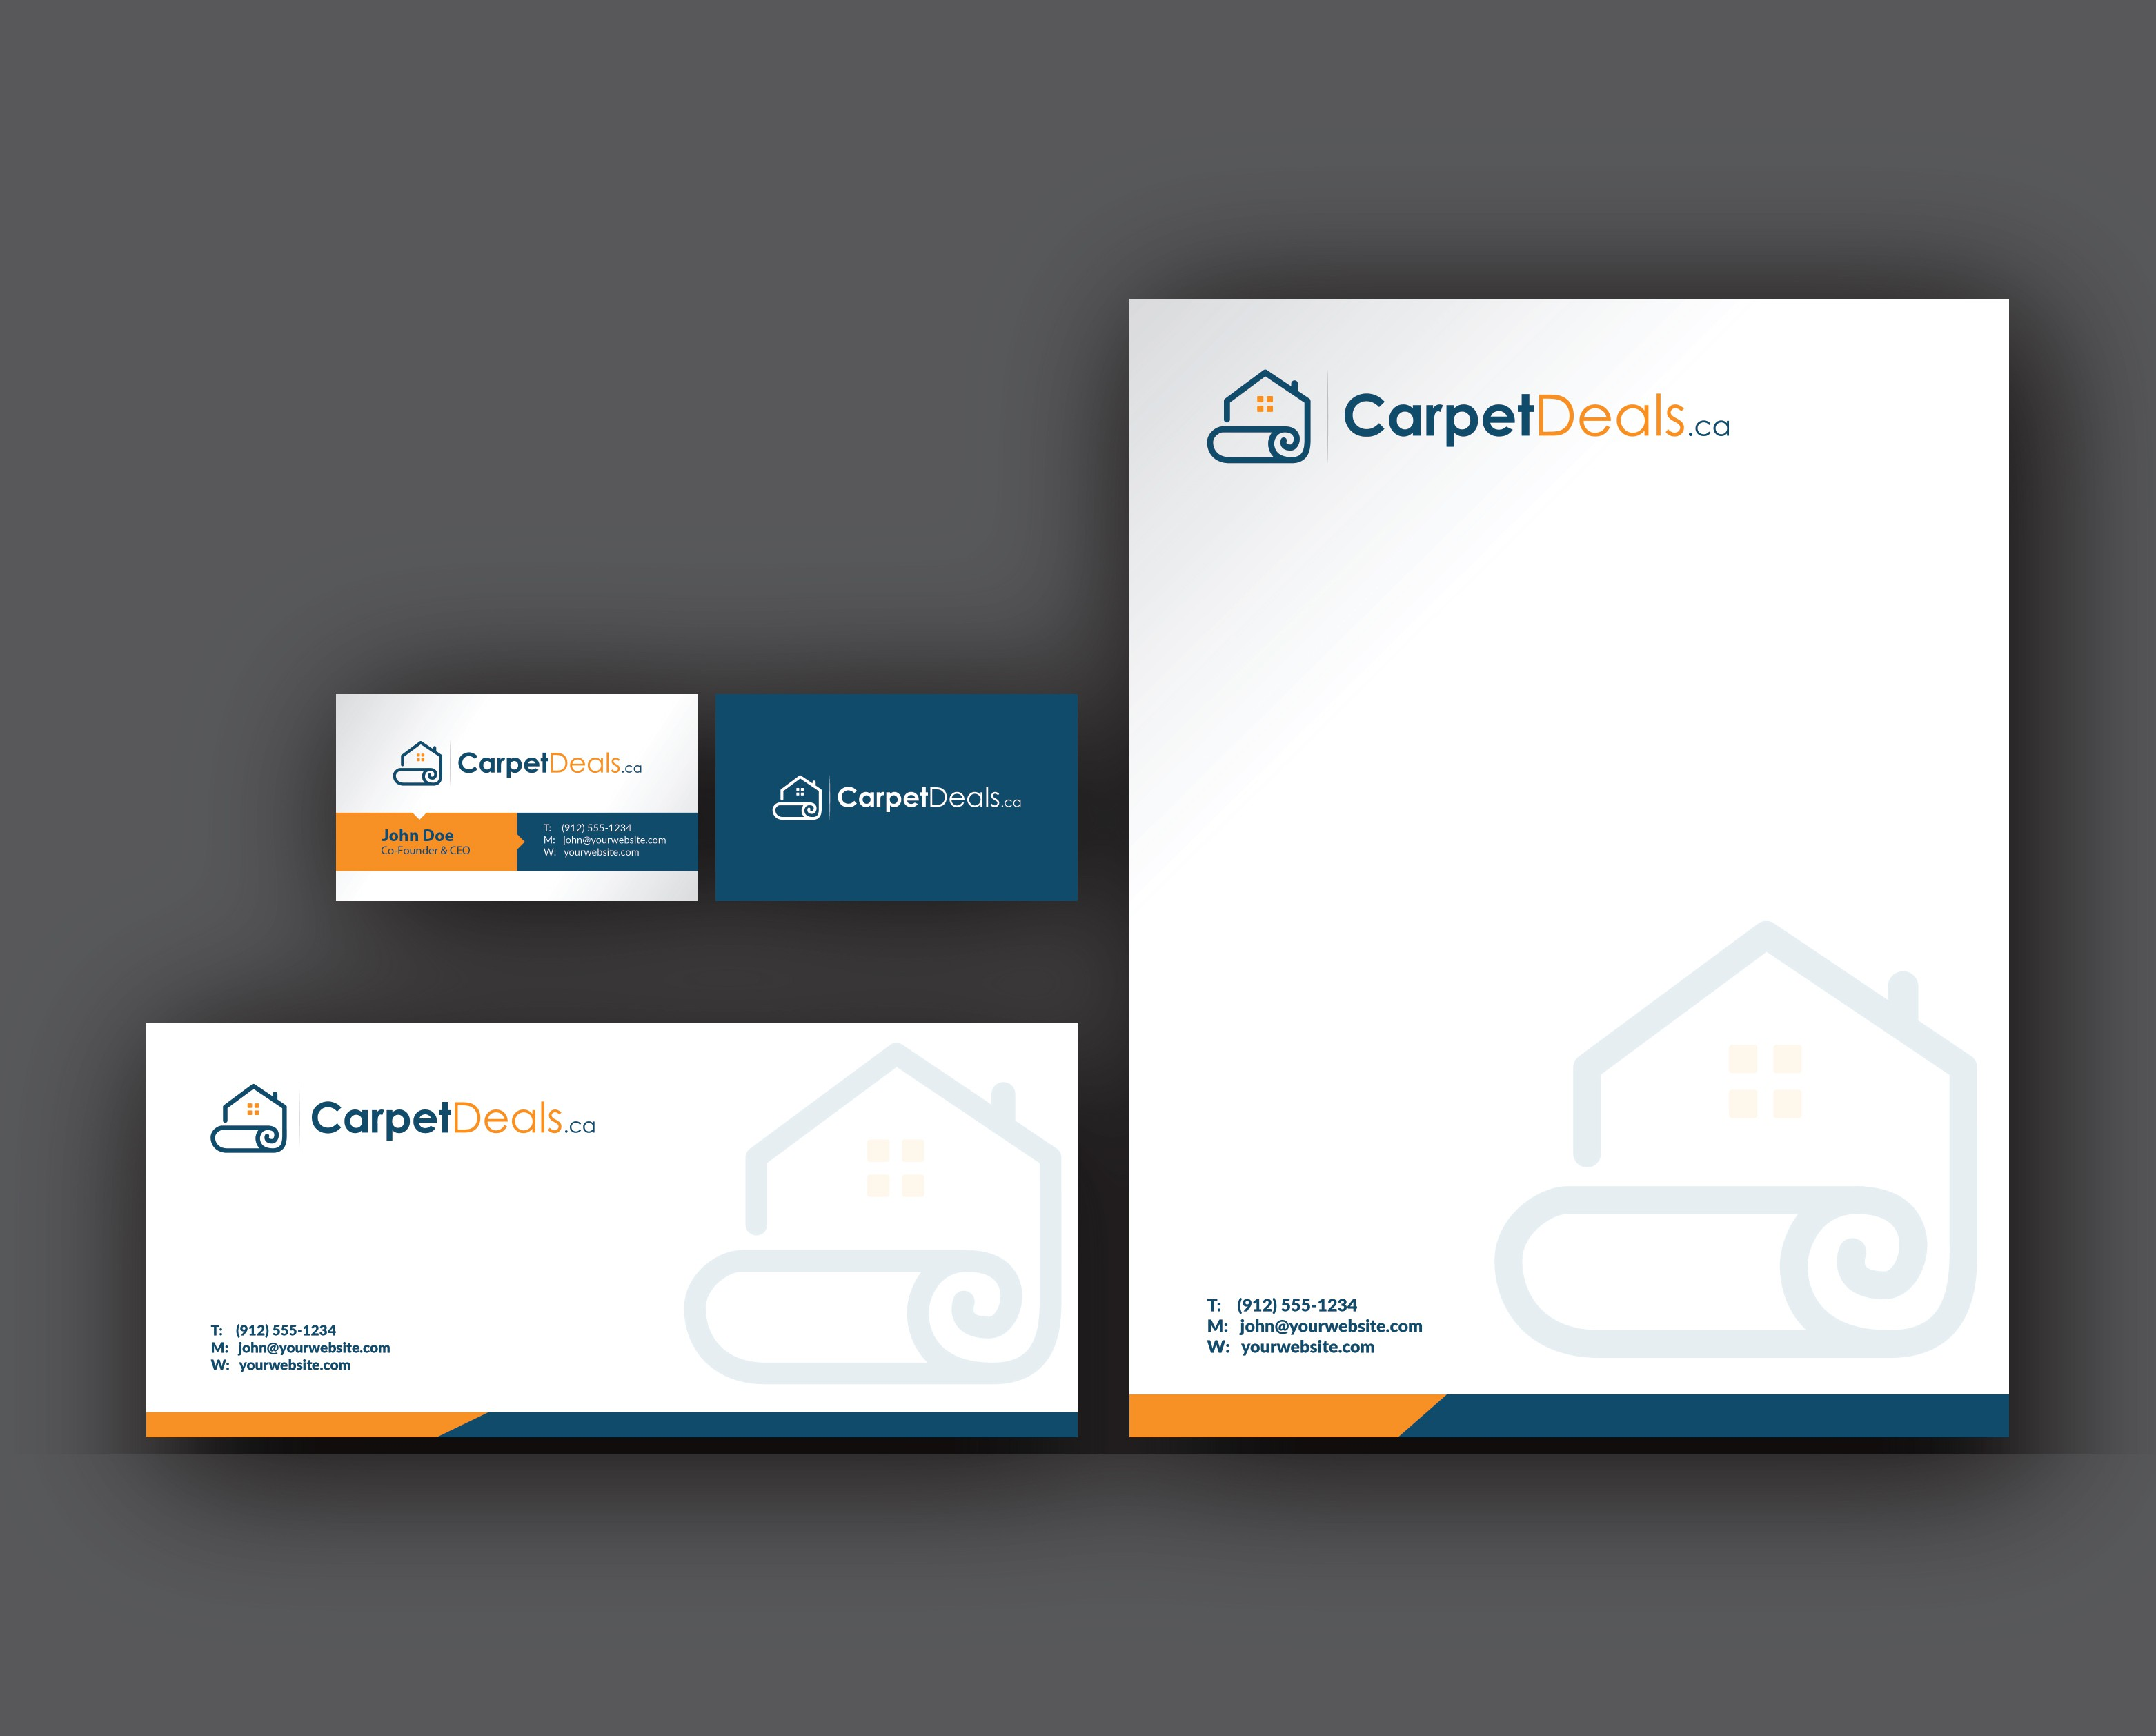 CarpetDeals.ca needs a new identity package.